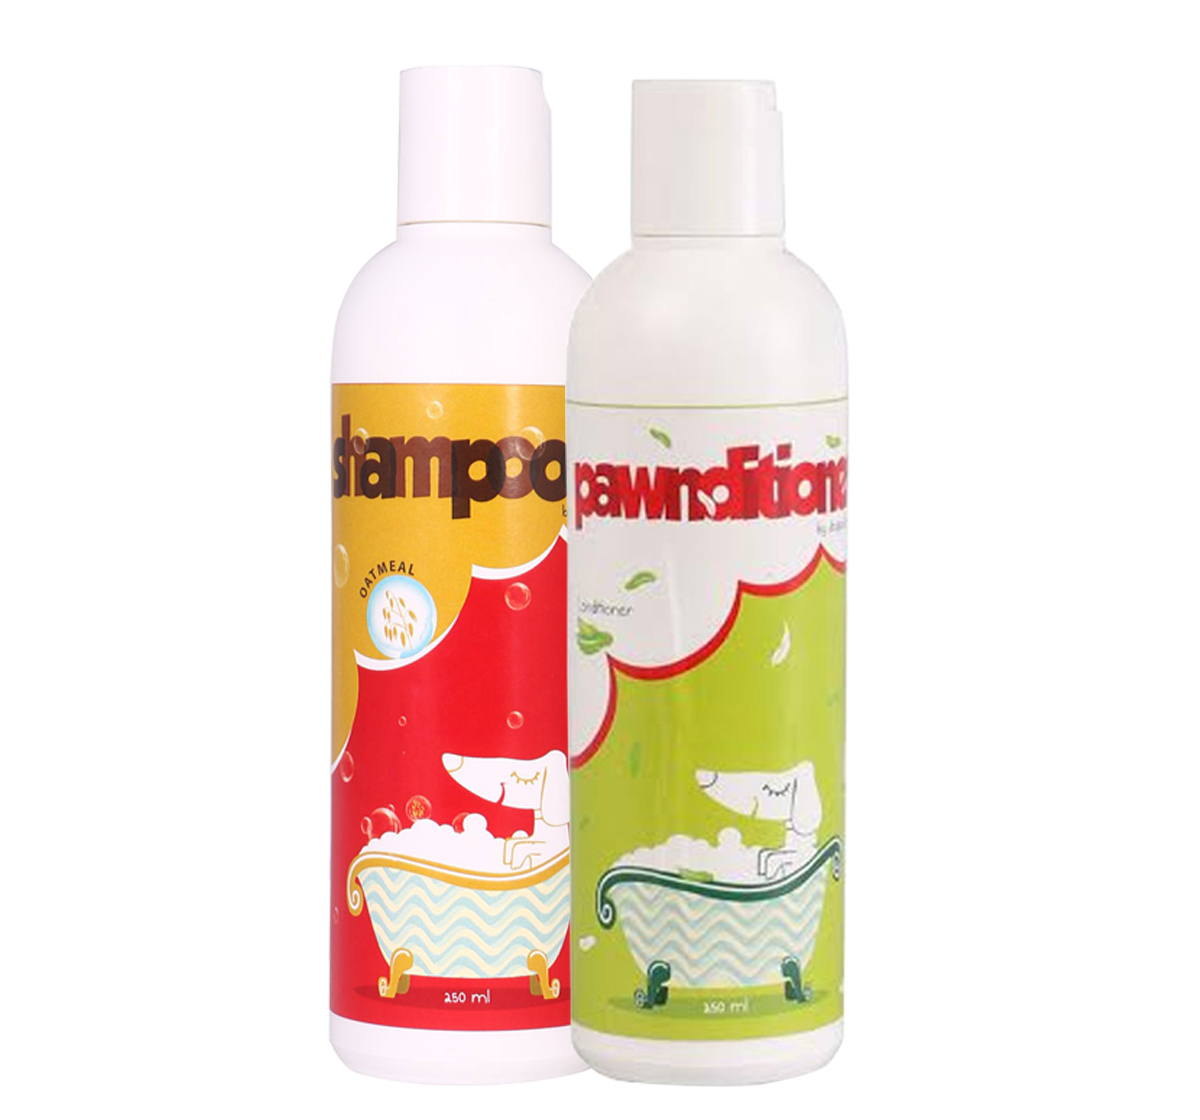 Shampooch OatMeal Shampoo & Pawnditioner Conditioner For Dogs - (250+250) ml